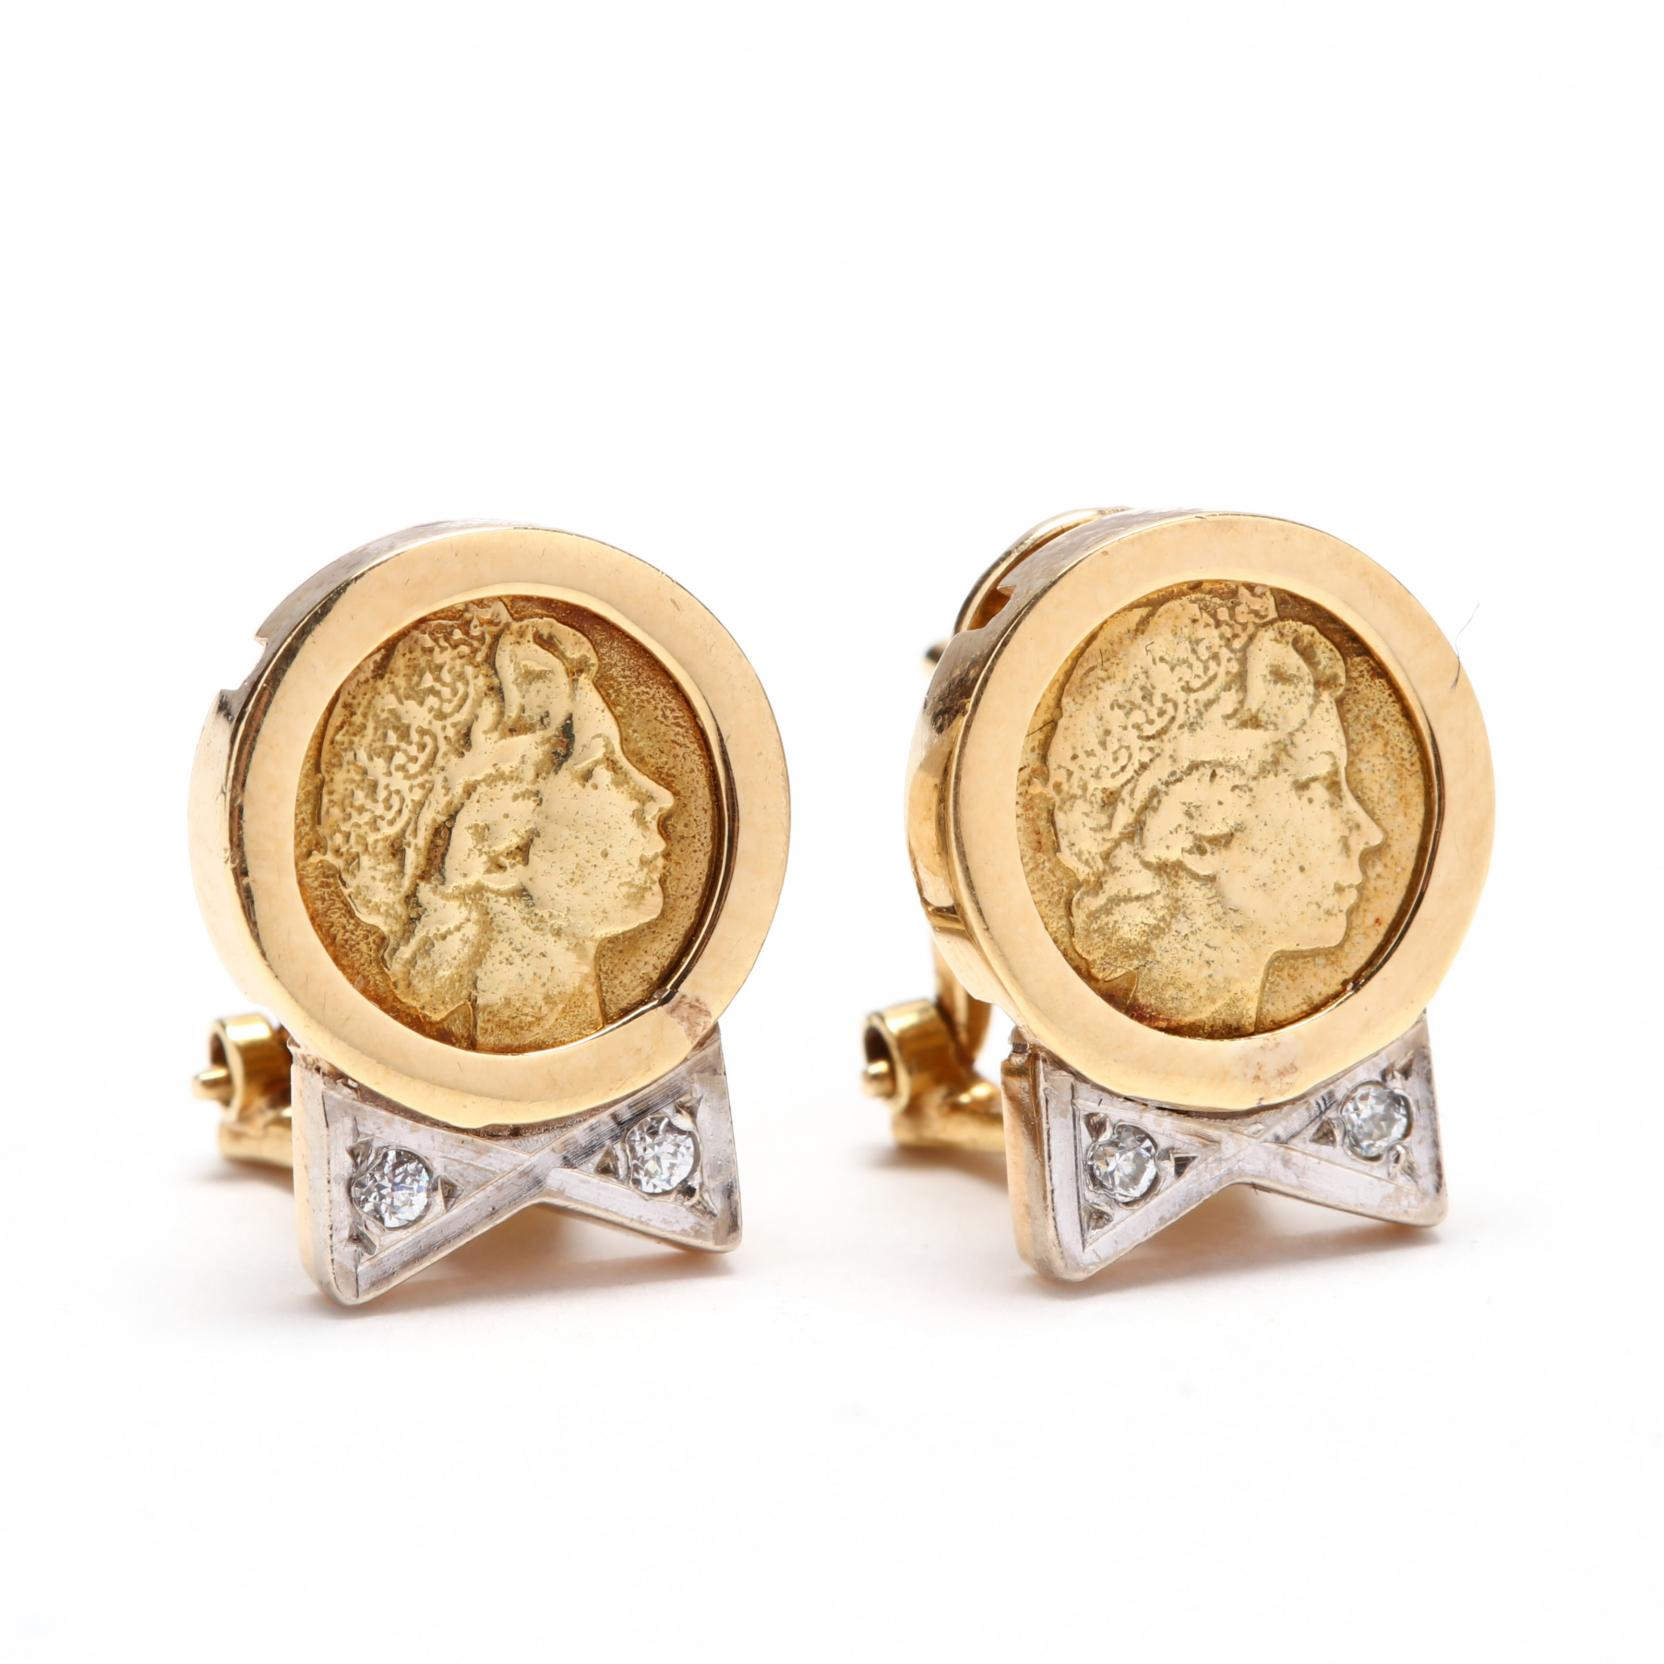 bicolor-18kt-gold-and-diamond-coin-motif-earrings